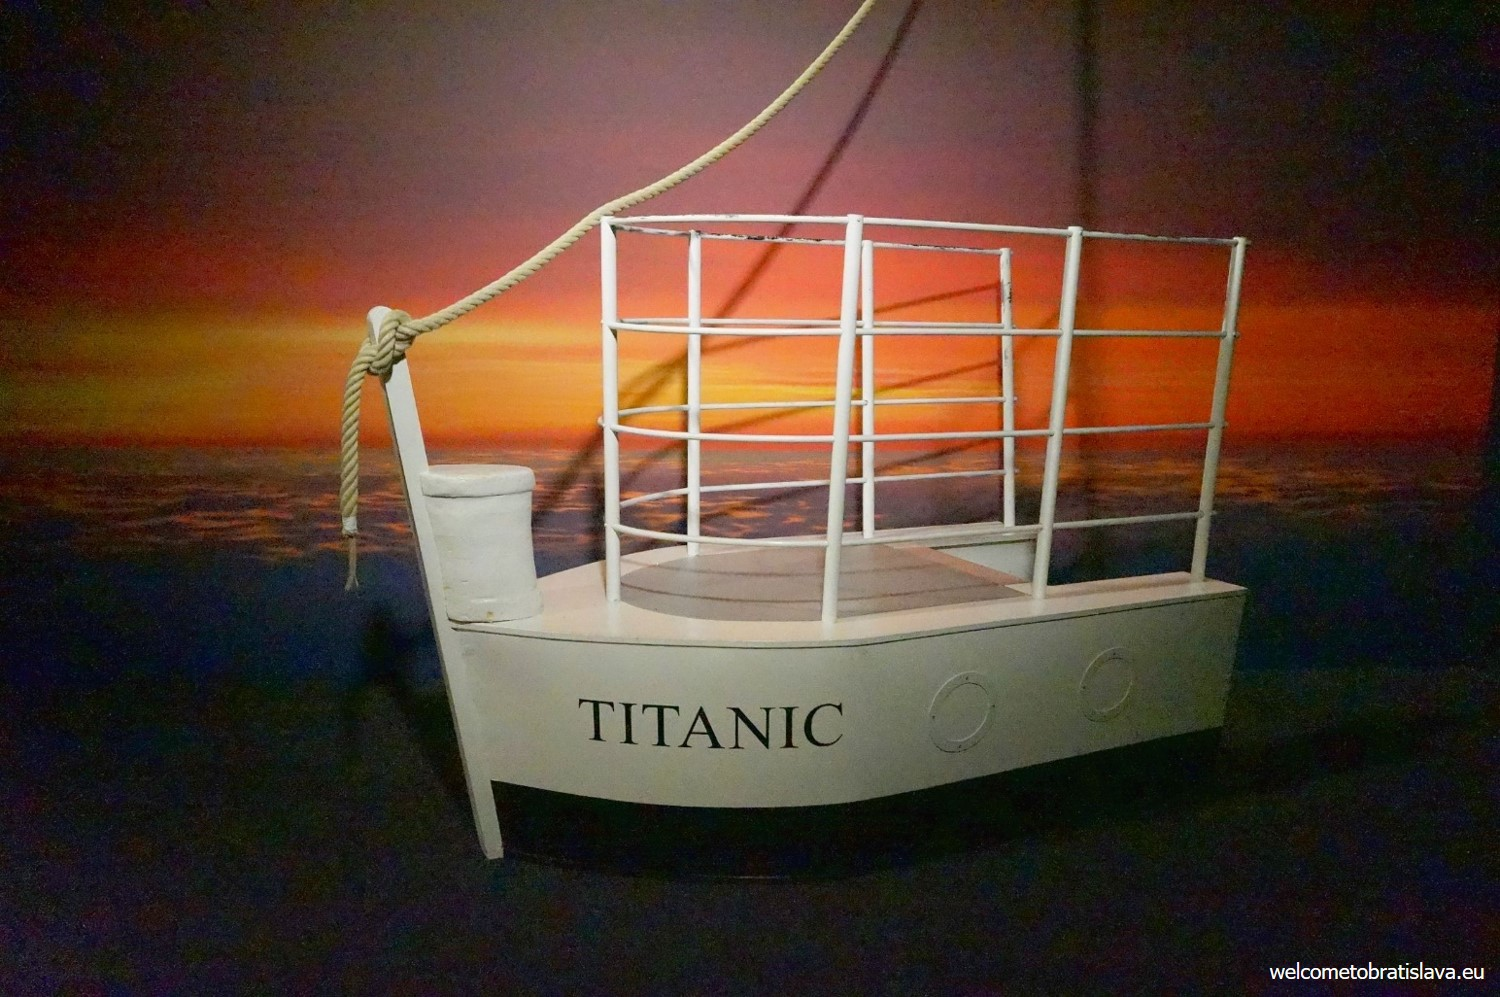 You'll have a chance to stand and take a picture on a small Titanic ship